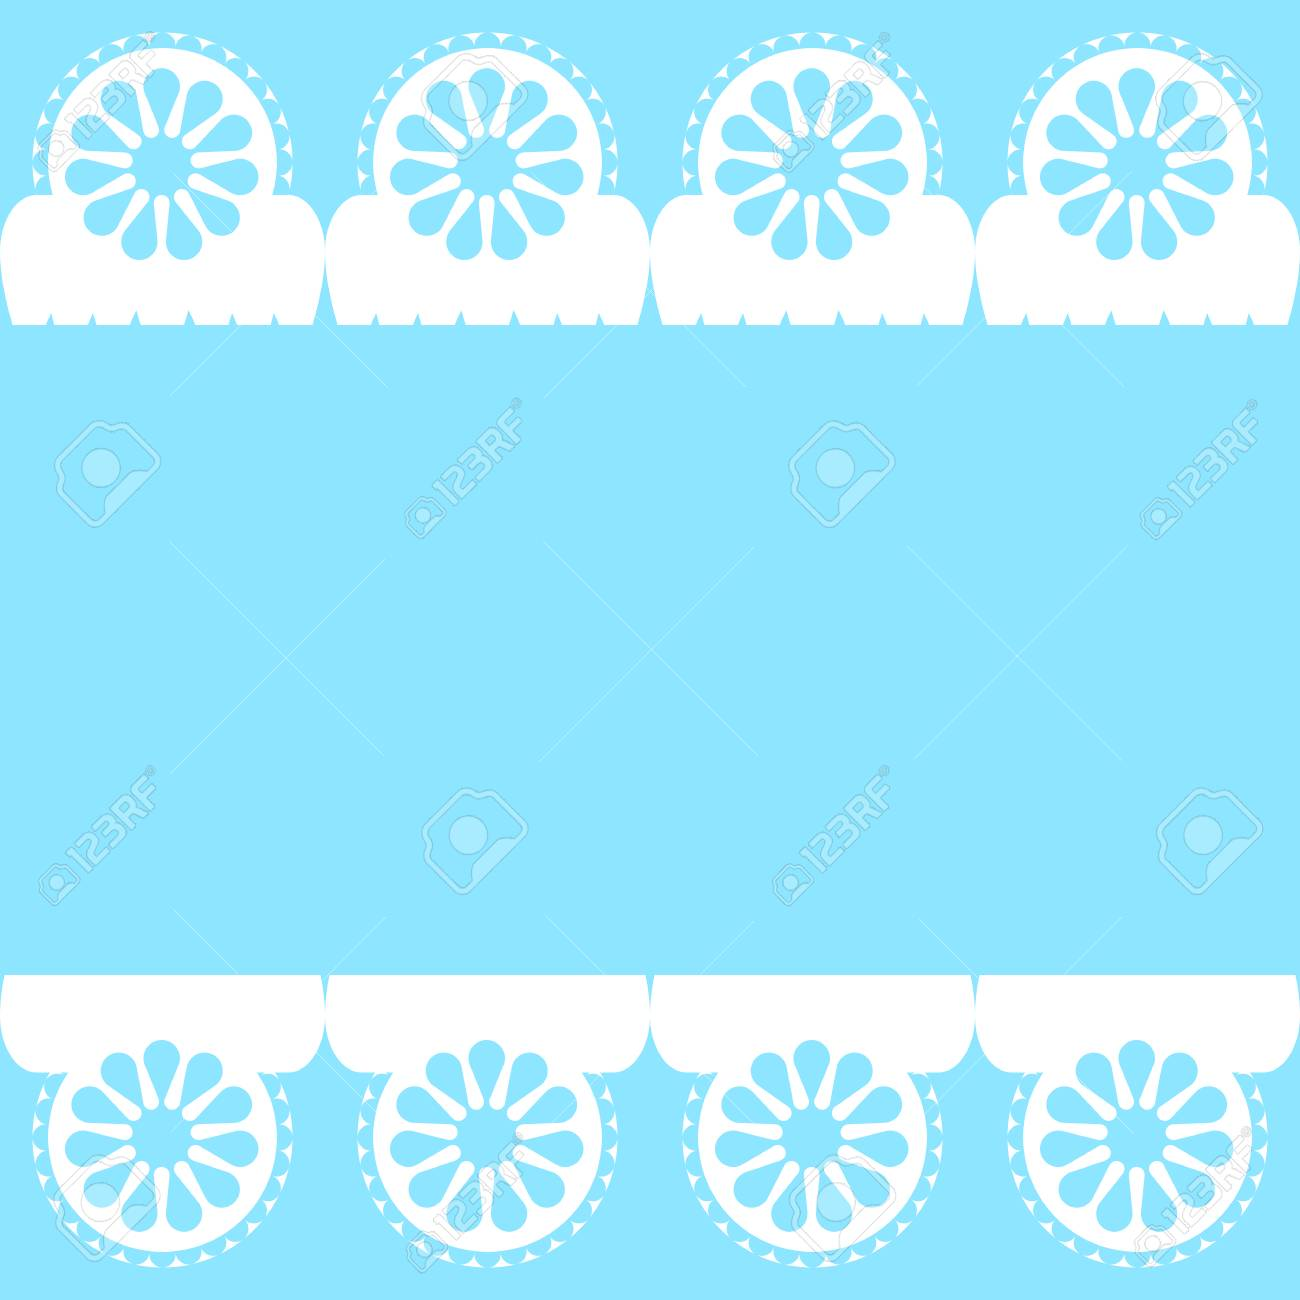 Ornamental geometric design in blue and white background  template vector illustration Stock Vector - 79888794